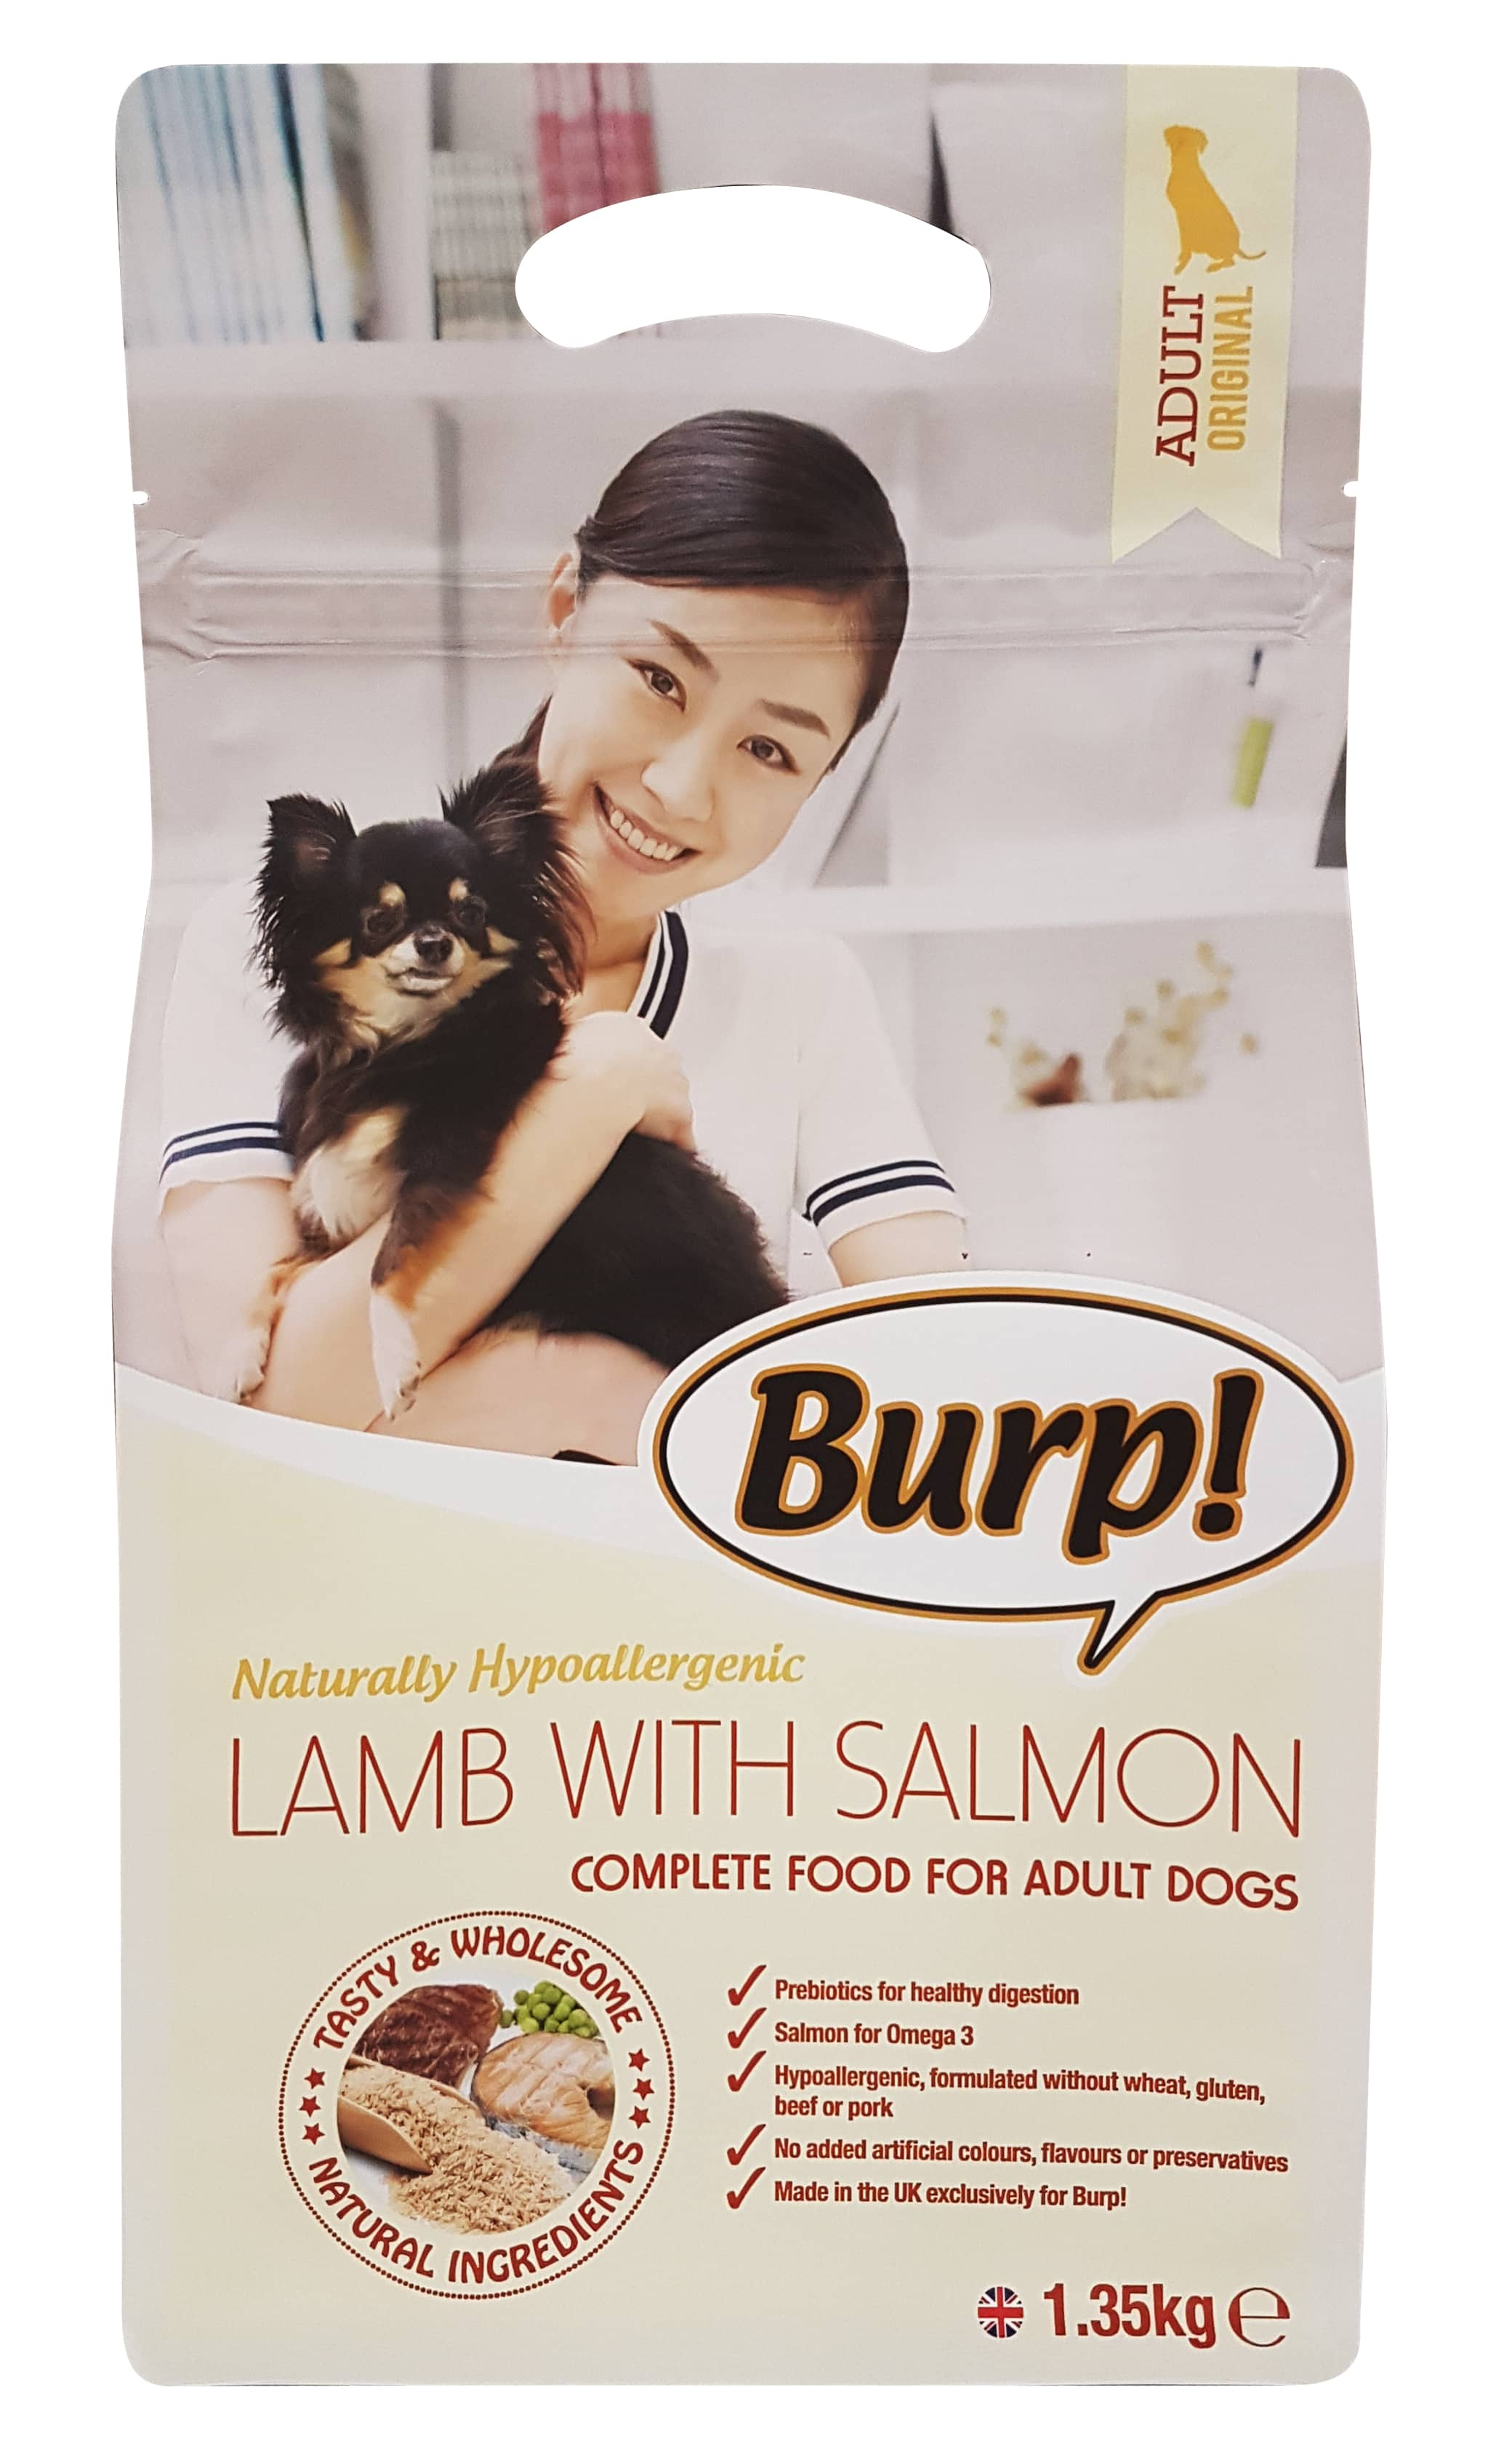 BURP! LAMB WITH SALMON HYPOALLERGENIC FOR ADULT DOG 1.35kg